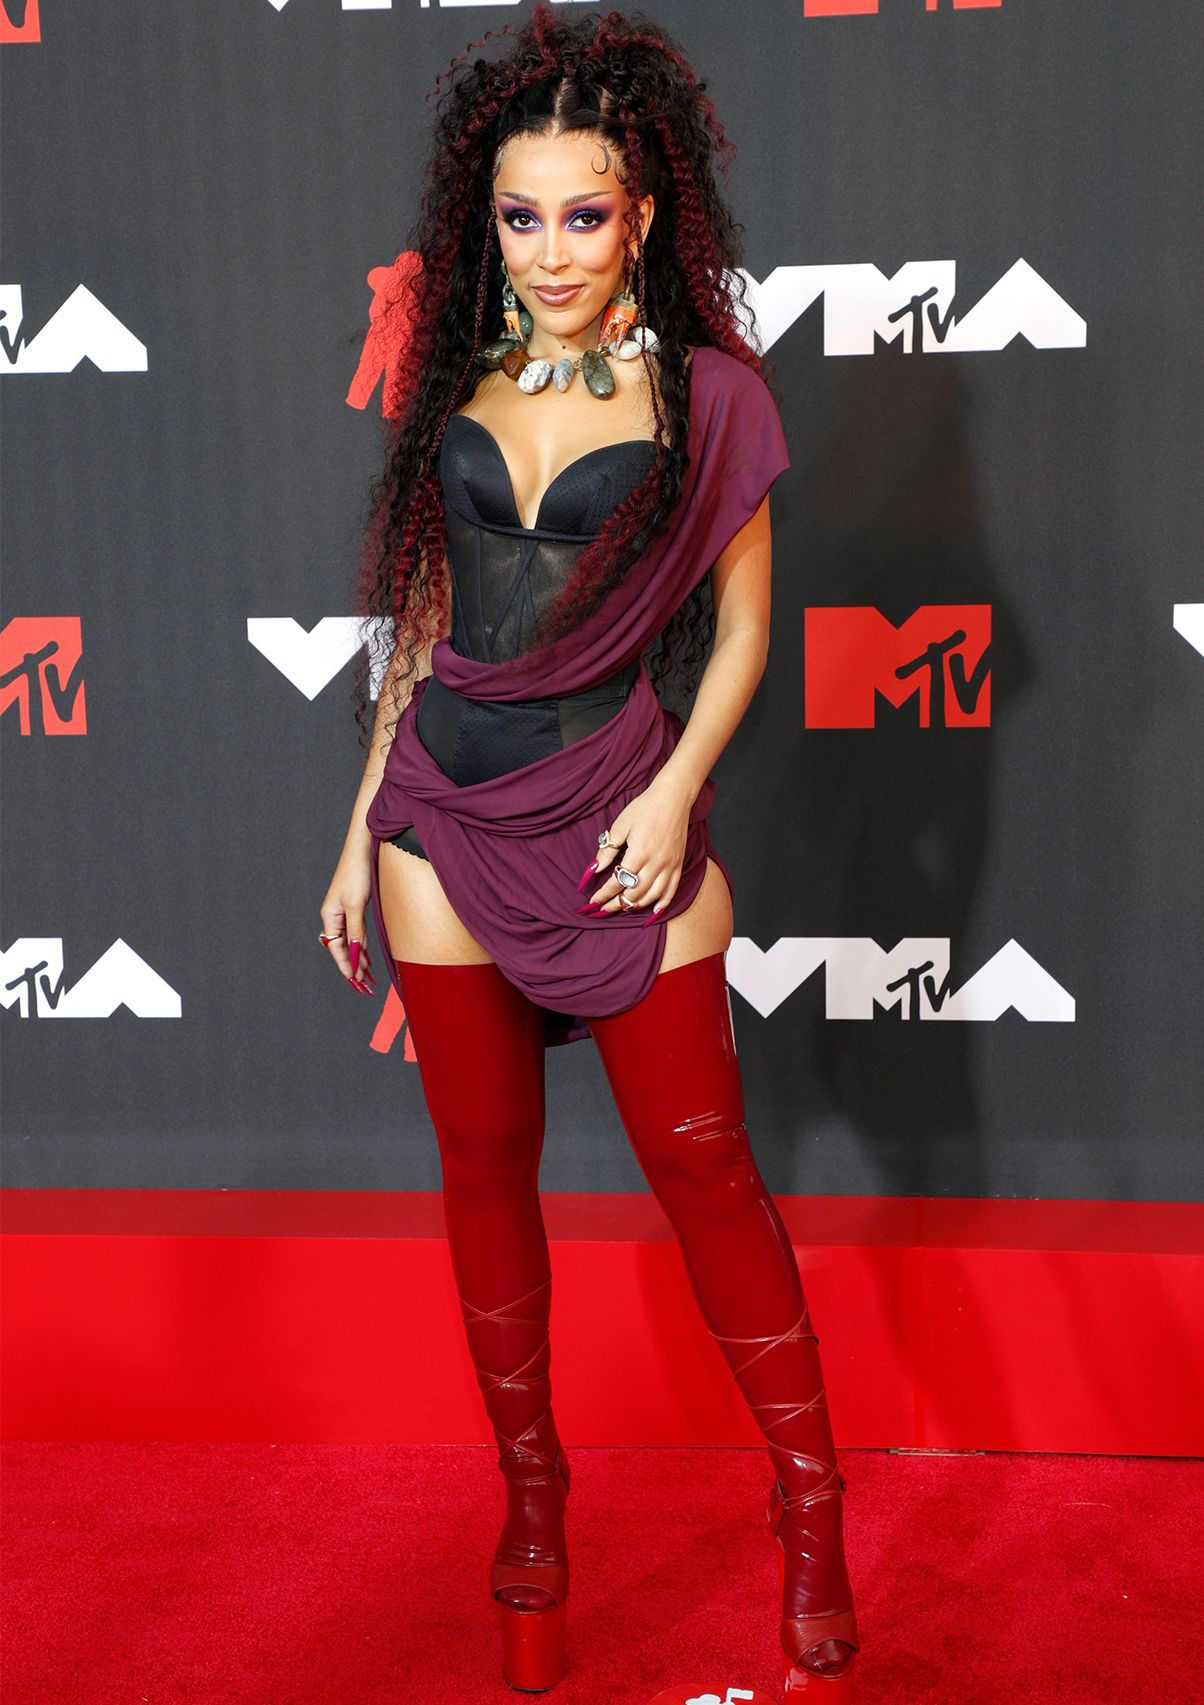 The MTV VMAs Red Carpet Looks That Shocked and Amazed Us - mtv vma red carpet 2021 295172 1631487102601